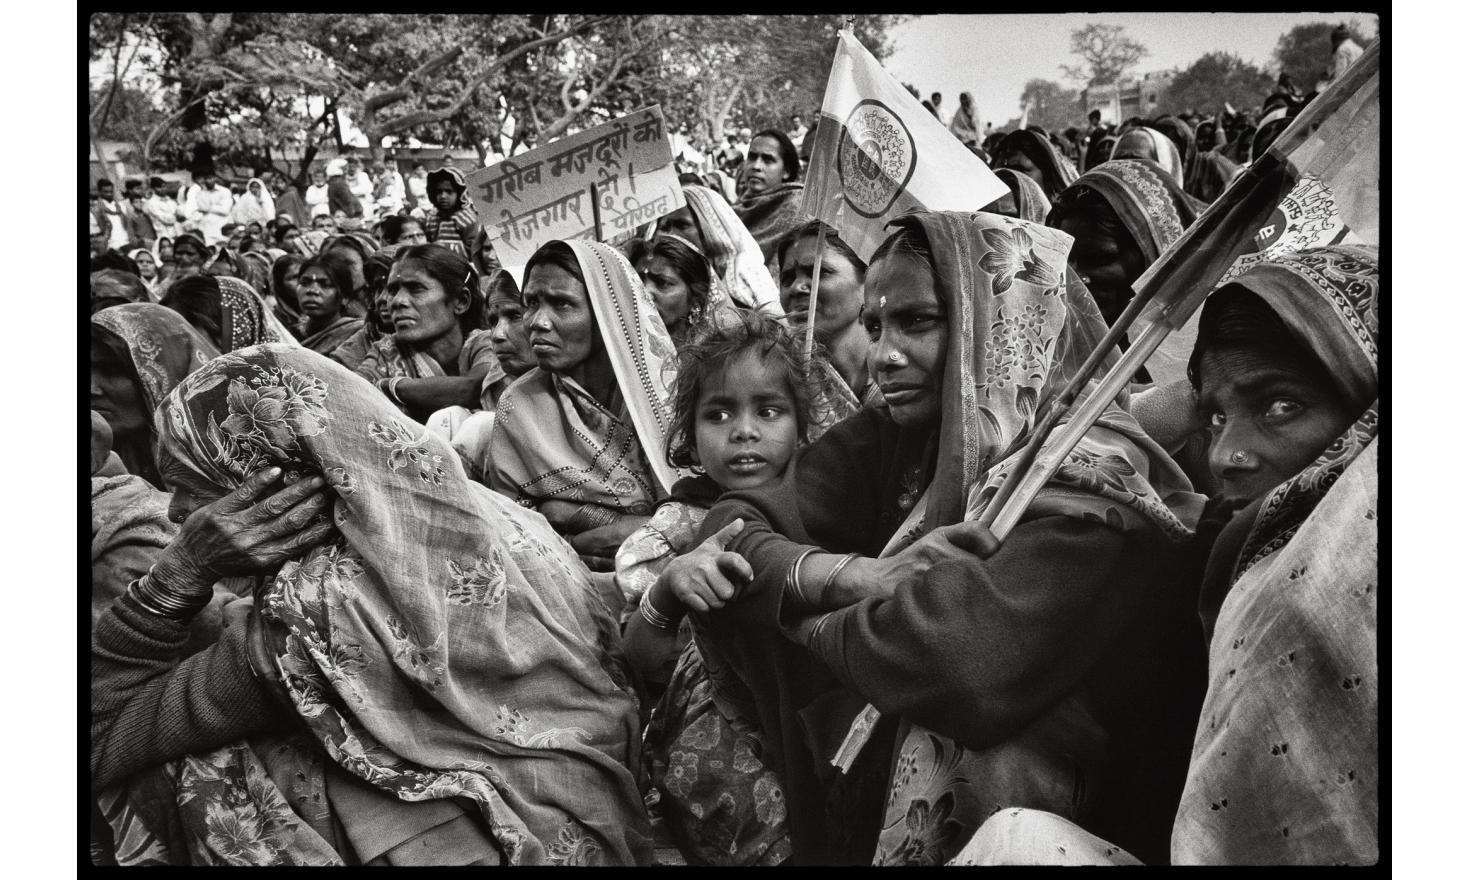 Bagaha, Bihar, India Even if they have been deprived of the right to own land, according to Indian law, women are at the forefront of the battle for the landless.